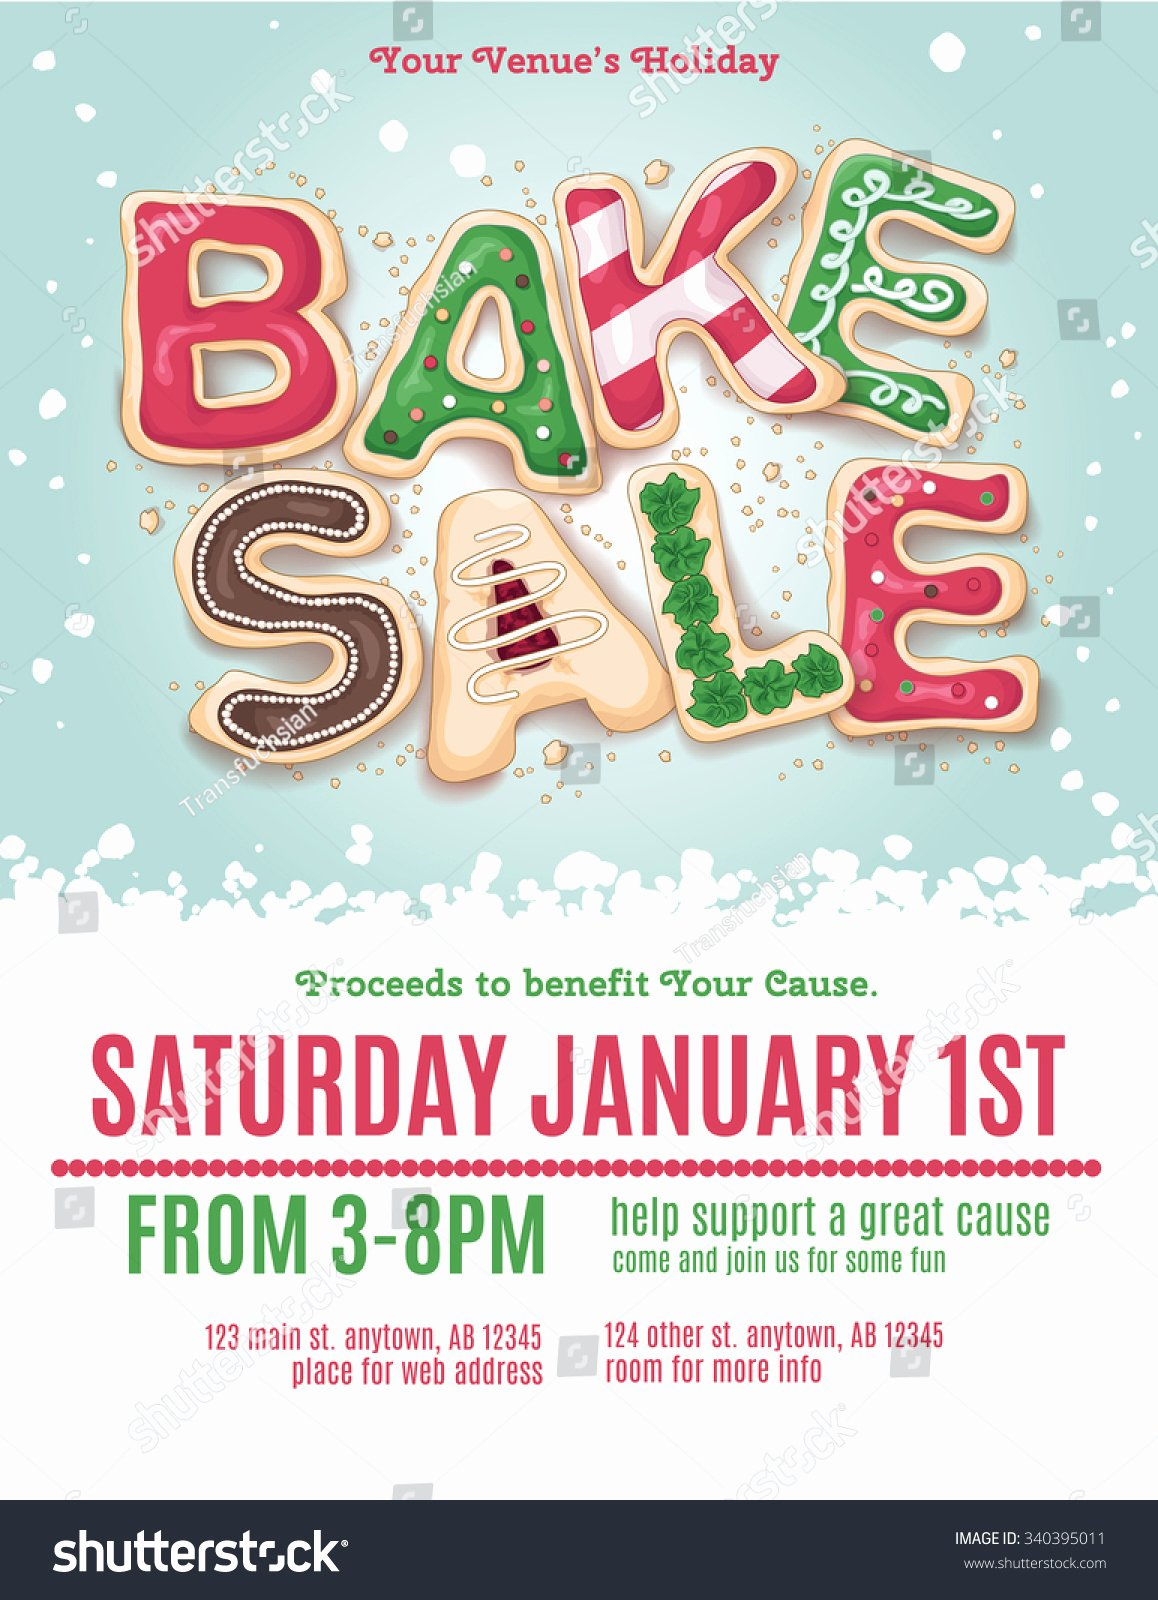 Bake Sale Flyer Template Fresh Christmas Holiday Bake Sale Flyer Template with Hand Drawn